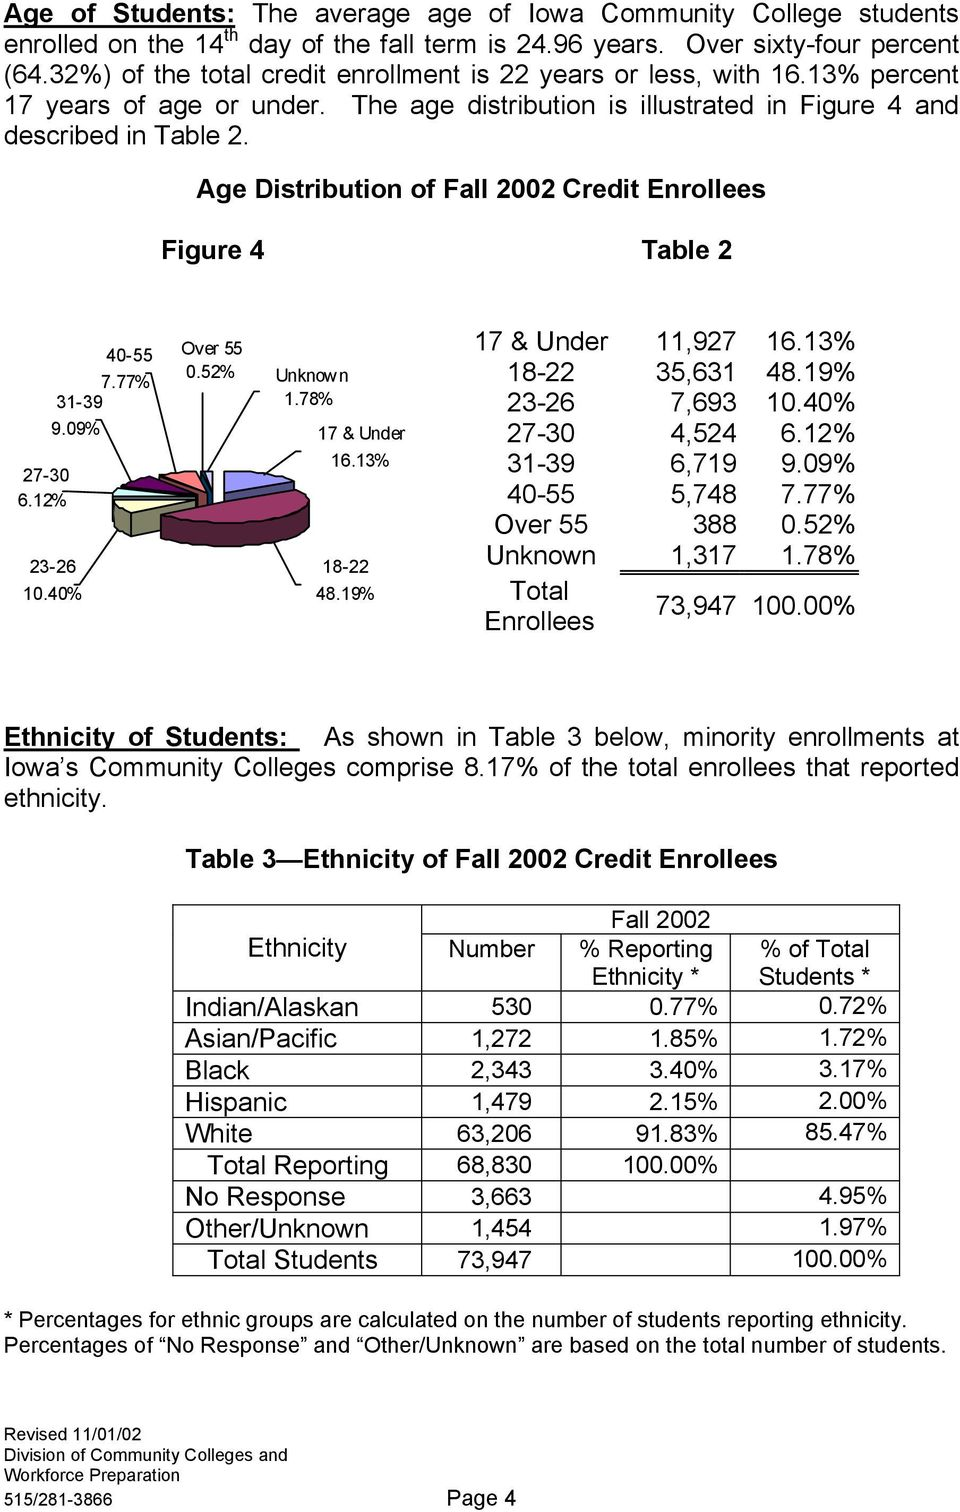 Age Distribution of Fall 2002 Credit Enrollees Figure 4 Table 2 40-55 7.77% 31-39 9.09% 27-30 6.12% 23-26 10.40% Over 55 0.52% Unknow n 1.78% 17 & Under 16.13% 18-22 48.19% 17 & Under 11,927 16.